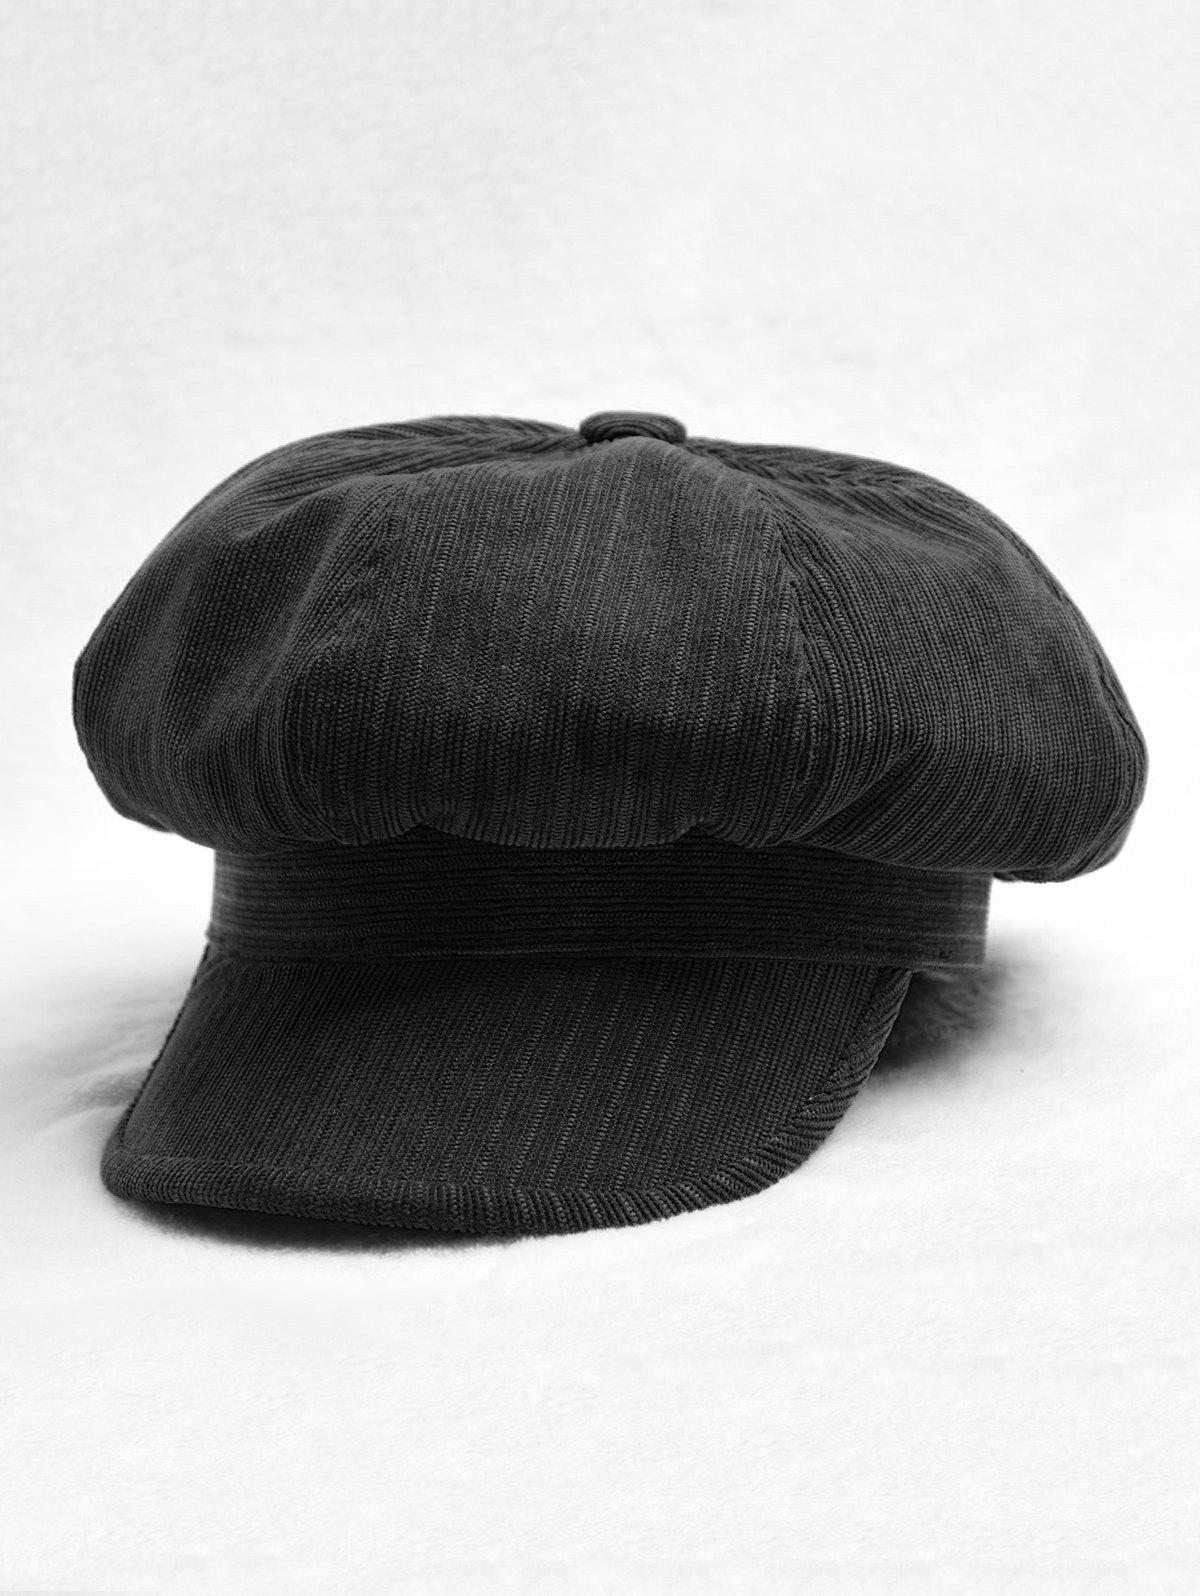 Fashion Octagonal Solid Peaked Beret Newsboy Hat